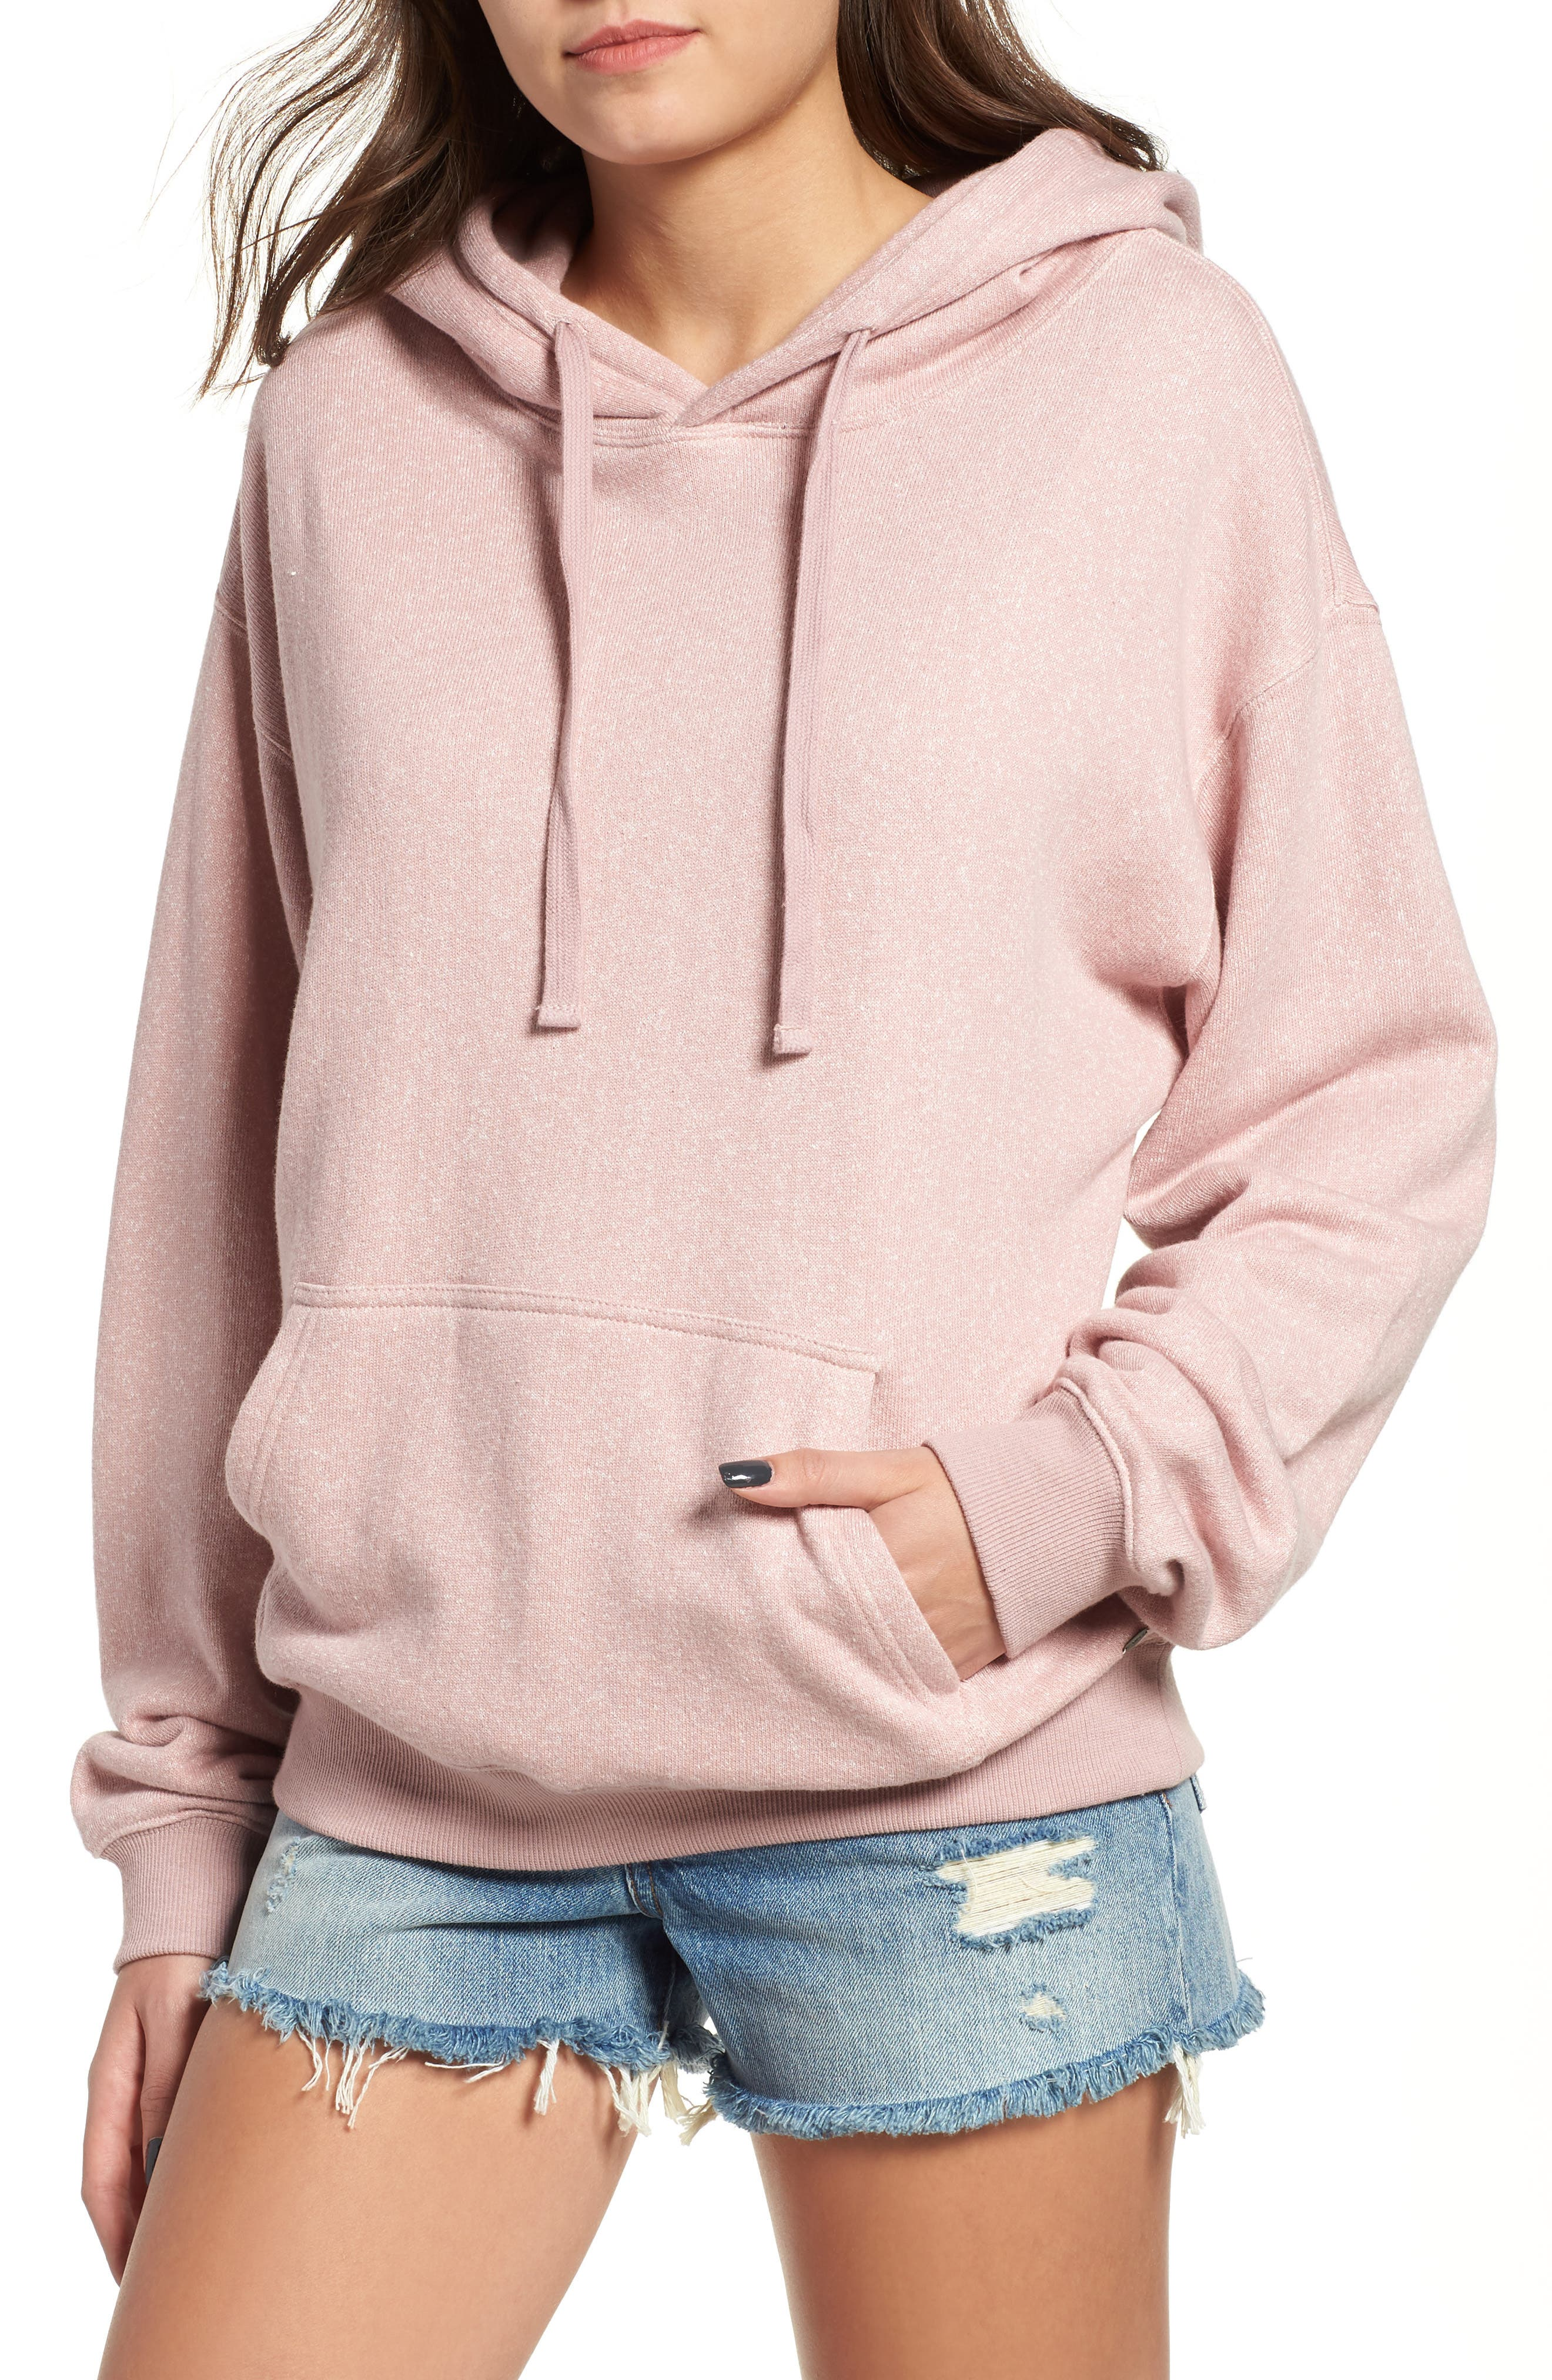 Shelbee Hoodie,                             Main thumbnail 1, color,                             DEAUVILLE MAUVE